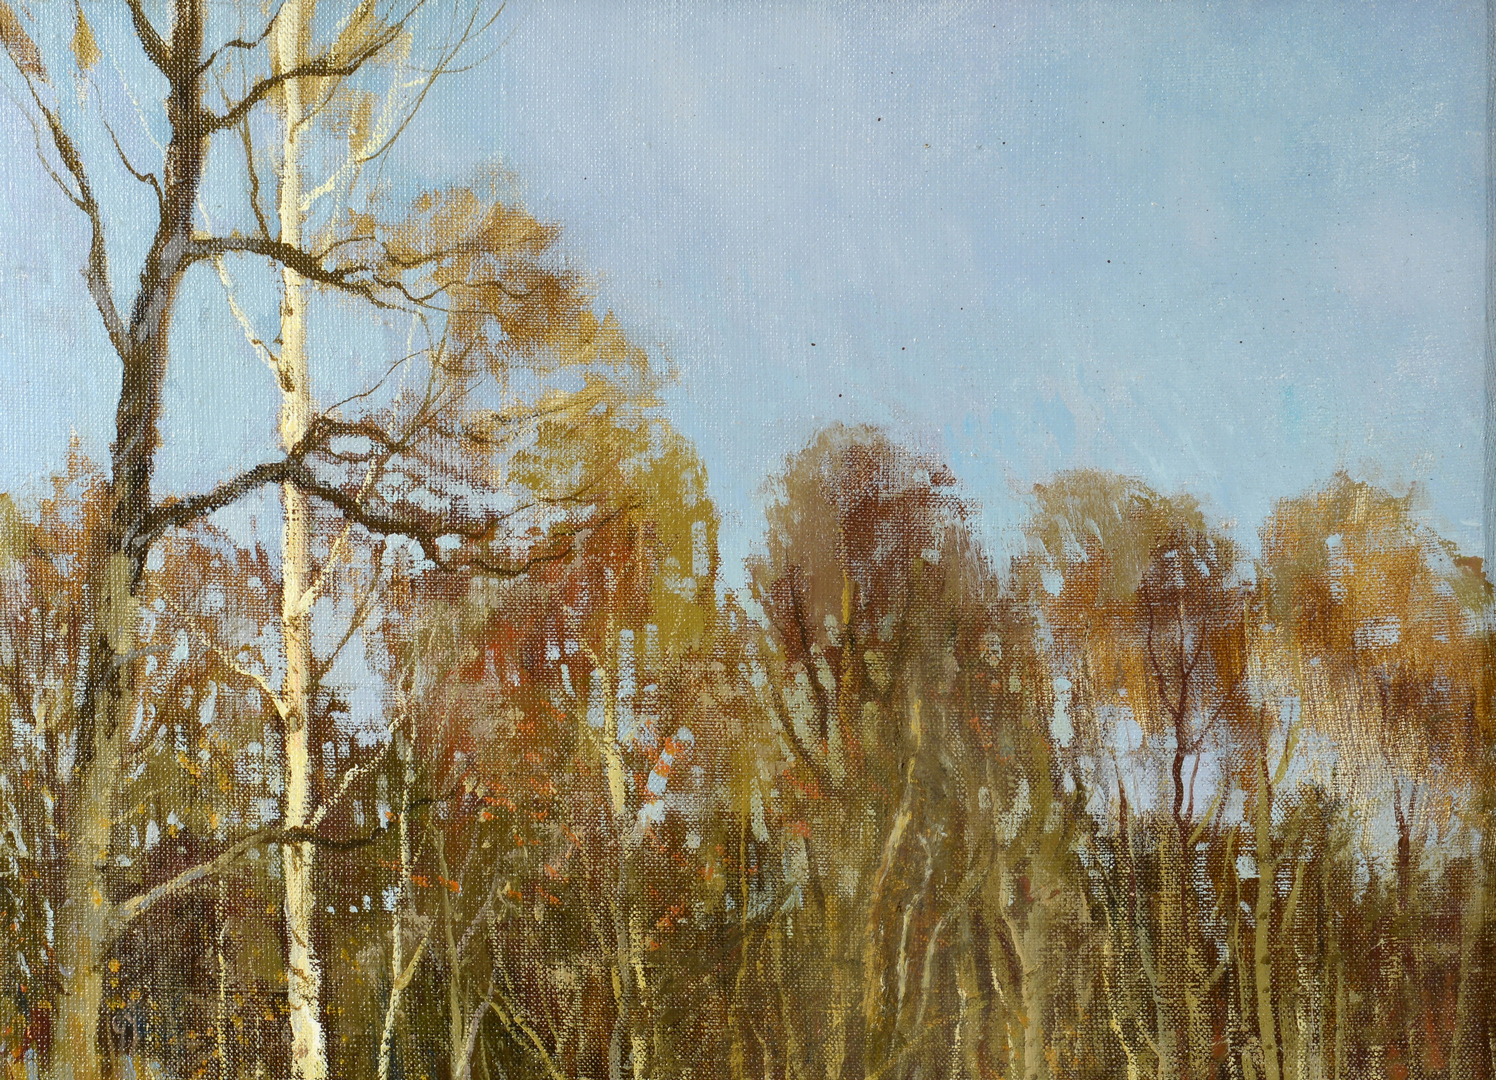 Lot 3088113: Alexander Kremer, oil on canvas, In the Forest